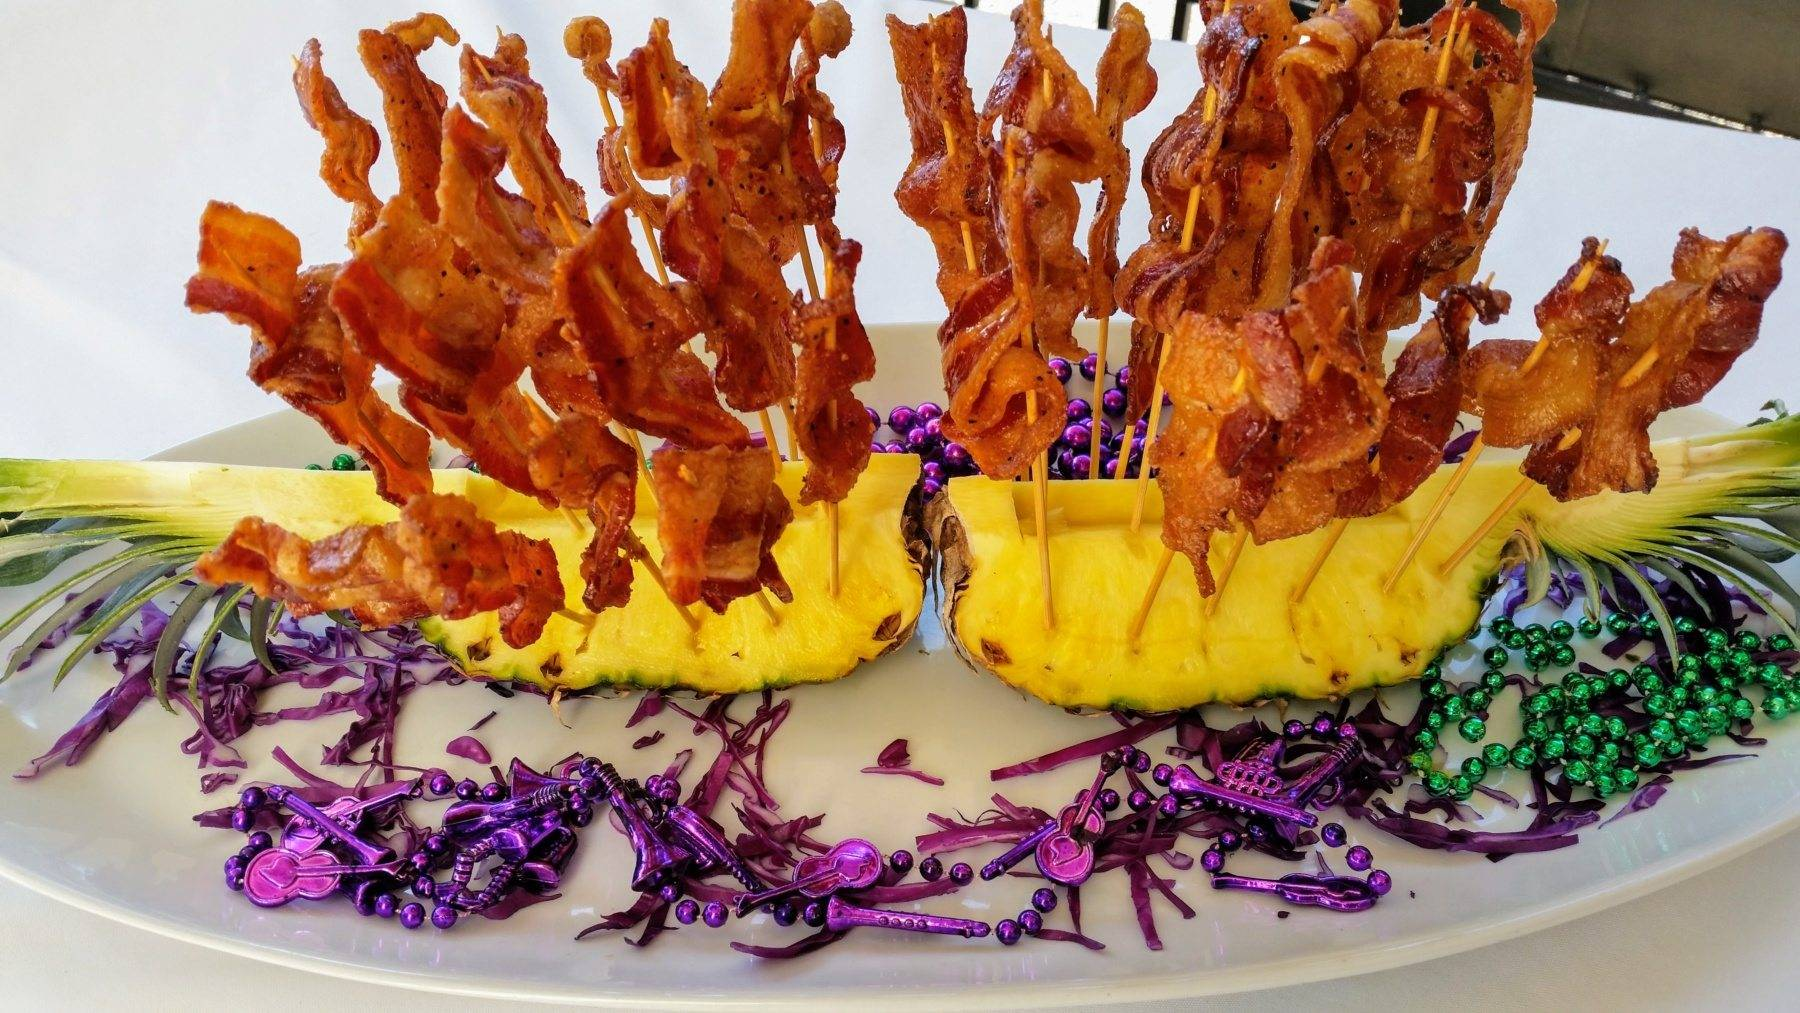 Candied bacon, on skewers, displayed on pineapple halves